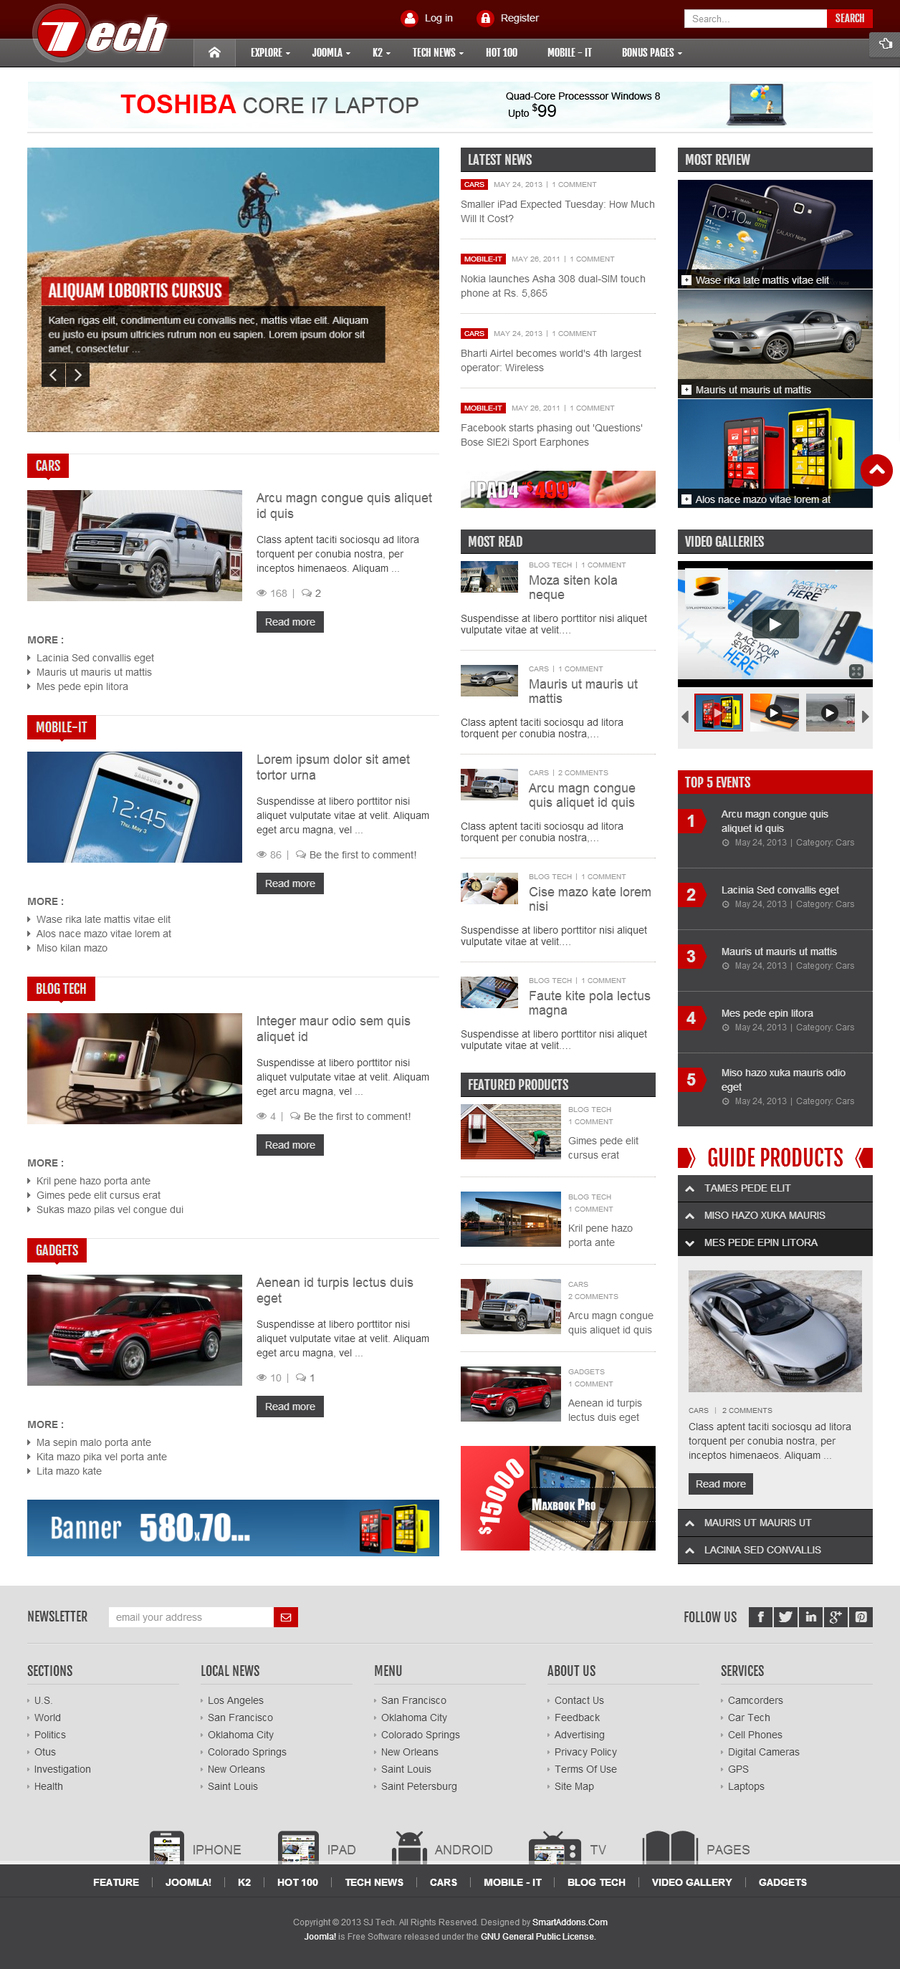 SJ Tech - Responsive Joomla news magazine Template for Tech - 01index.jpg